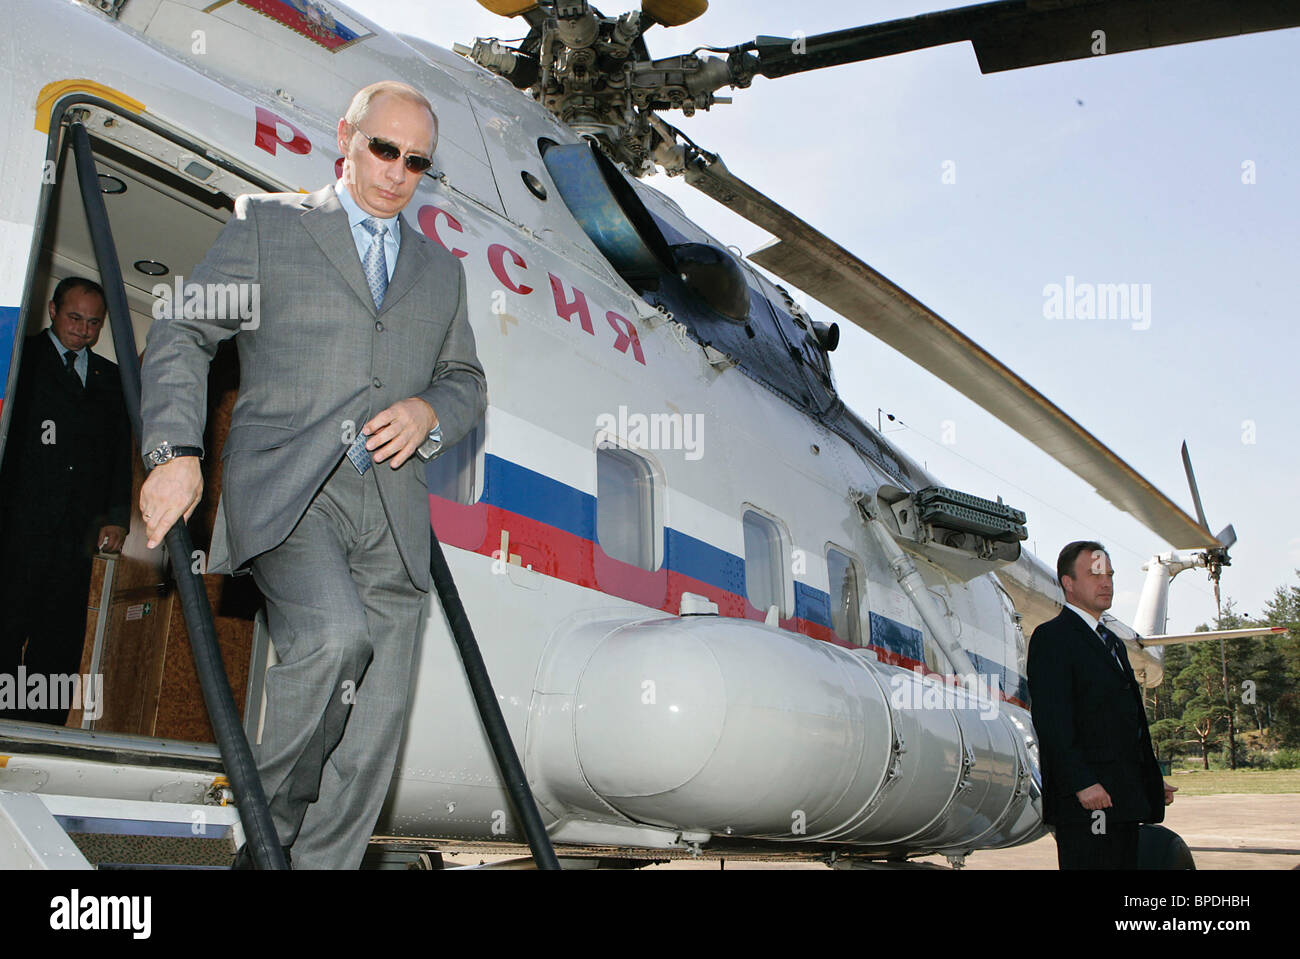 President Putin on a visit to St. Petersburg Stock Photo